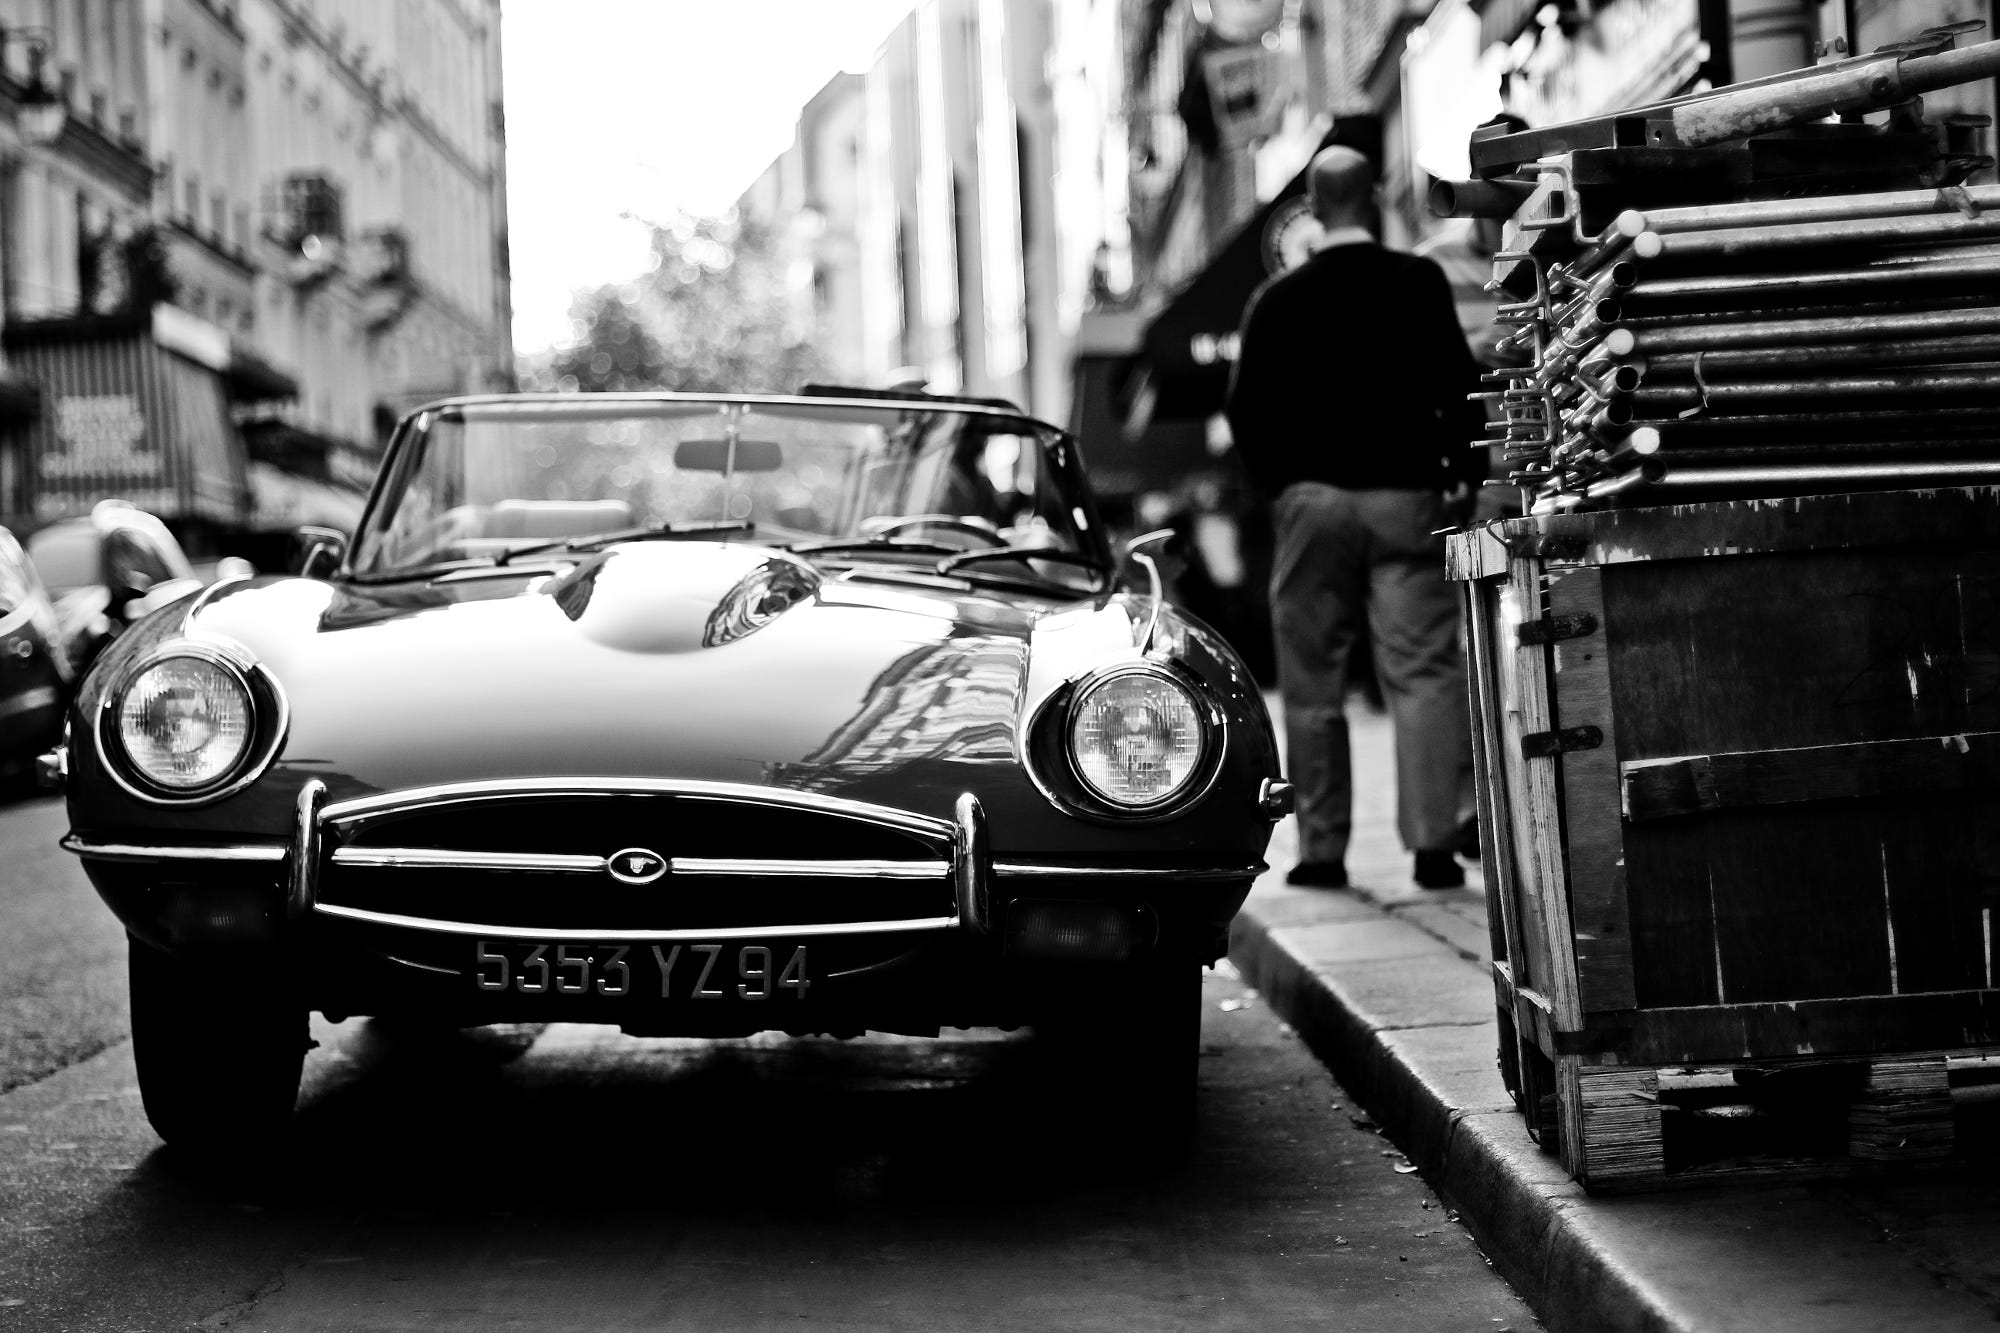 Jaguar Type E >> Jaguar E-type black and white by Nick Owen - Photo 7663950 / 500px